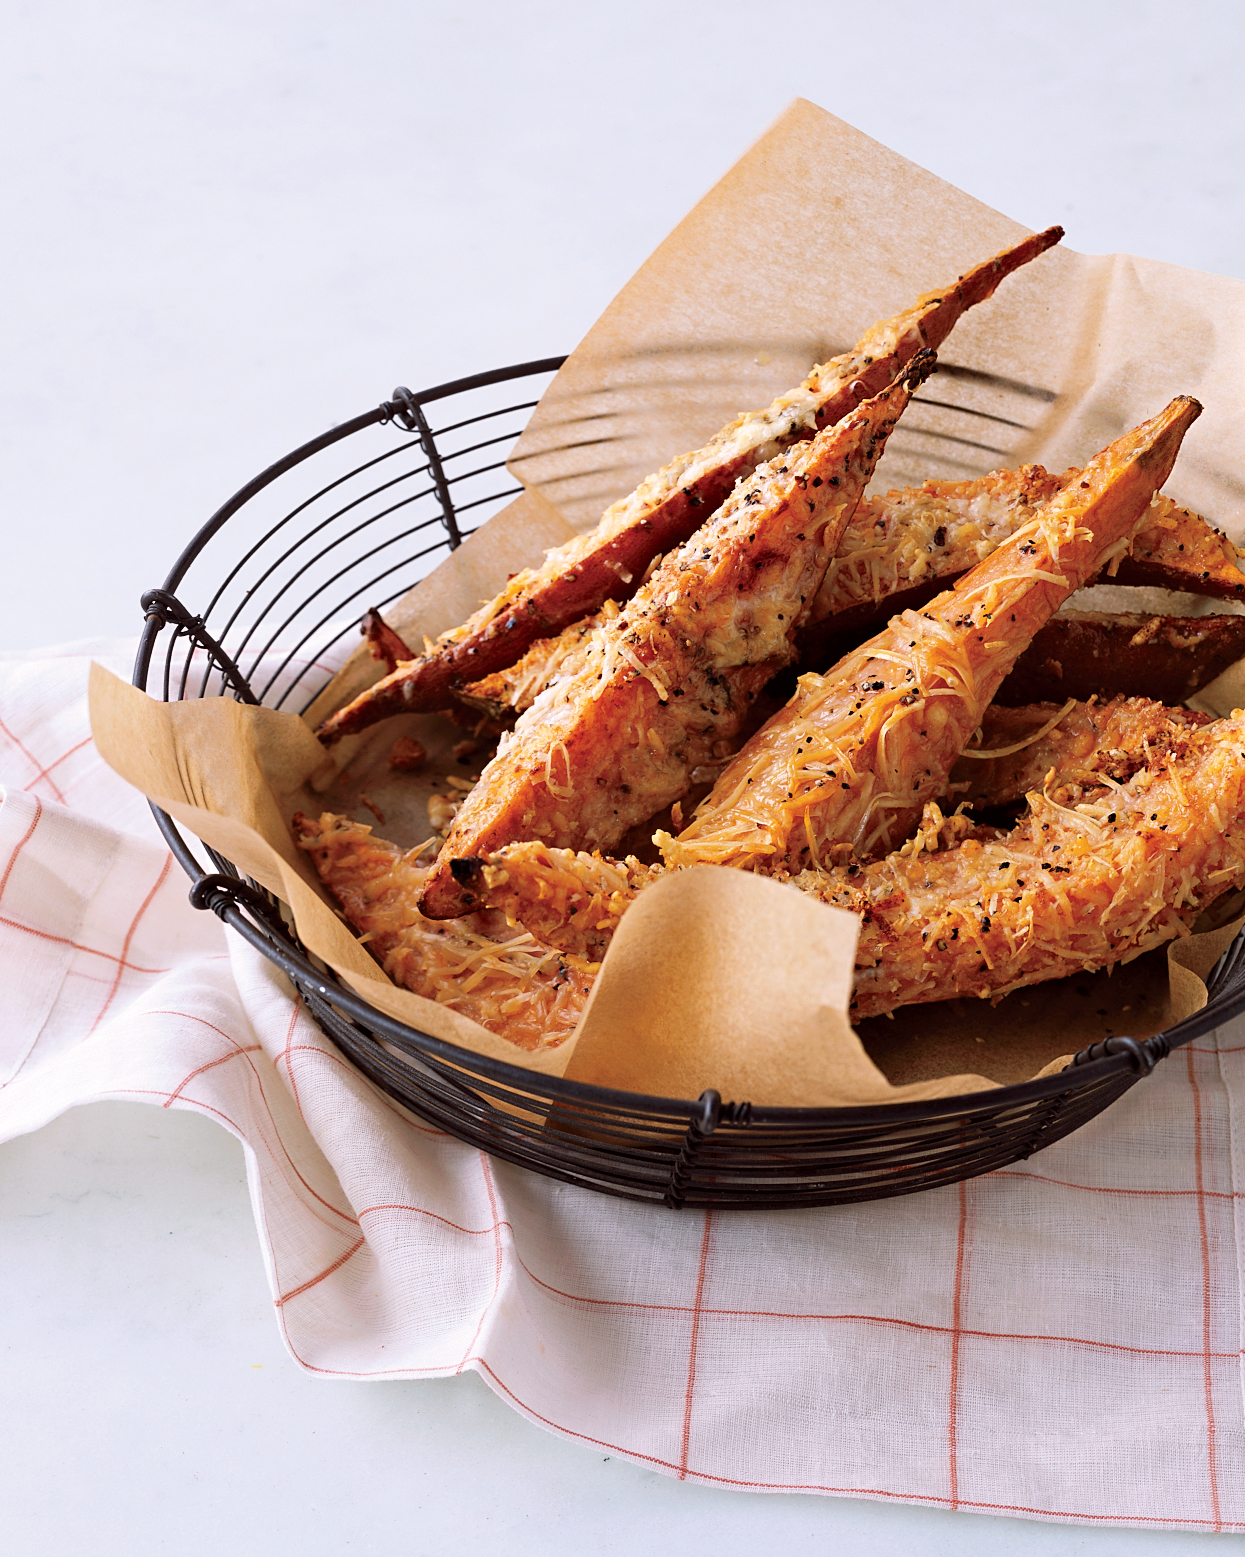 Parmesan-Coated Sweet Potato Fries